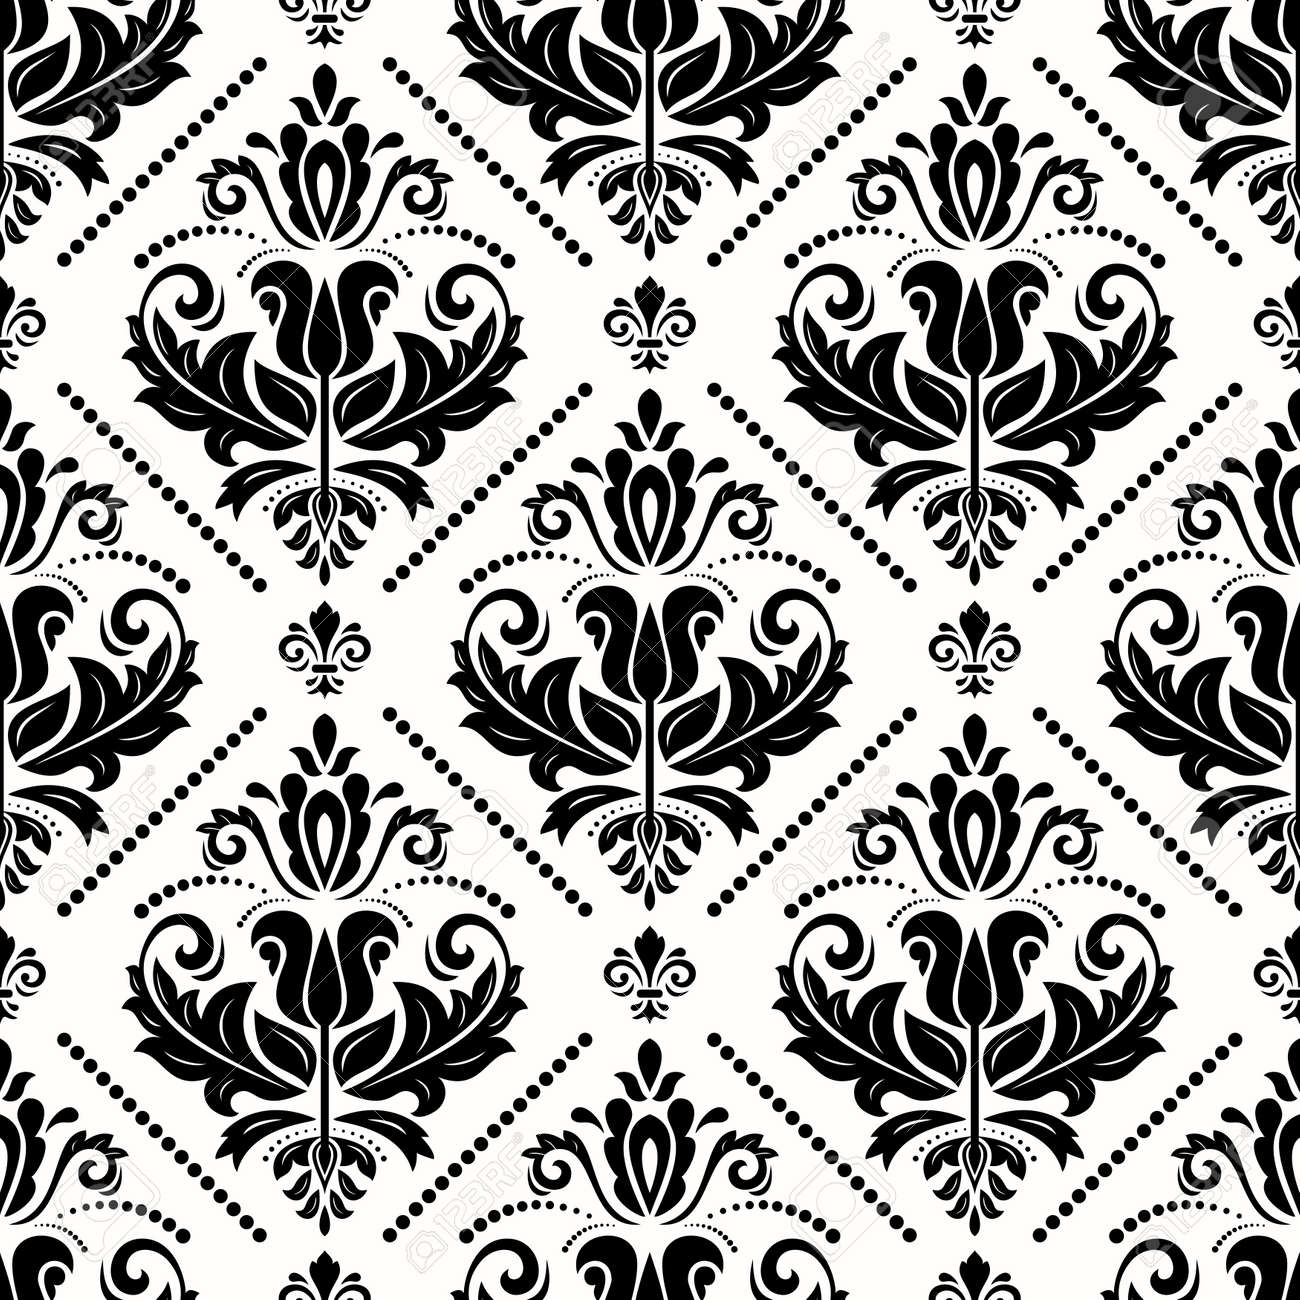 Classic seamless pattern. Damask orient ornament. Classic vintage background. Orient black and white ornament for fabric, wallpaper and packaging - 167155955